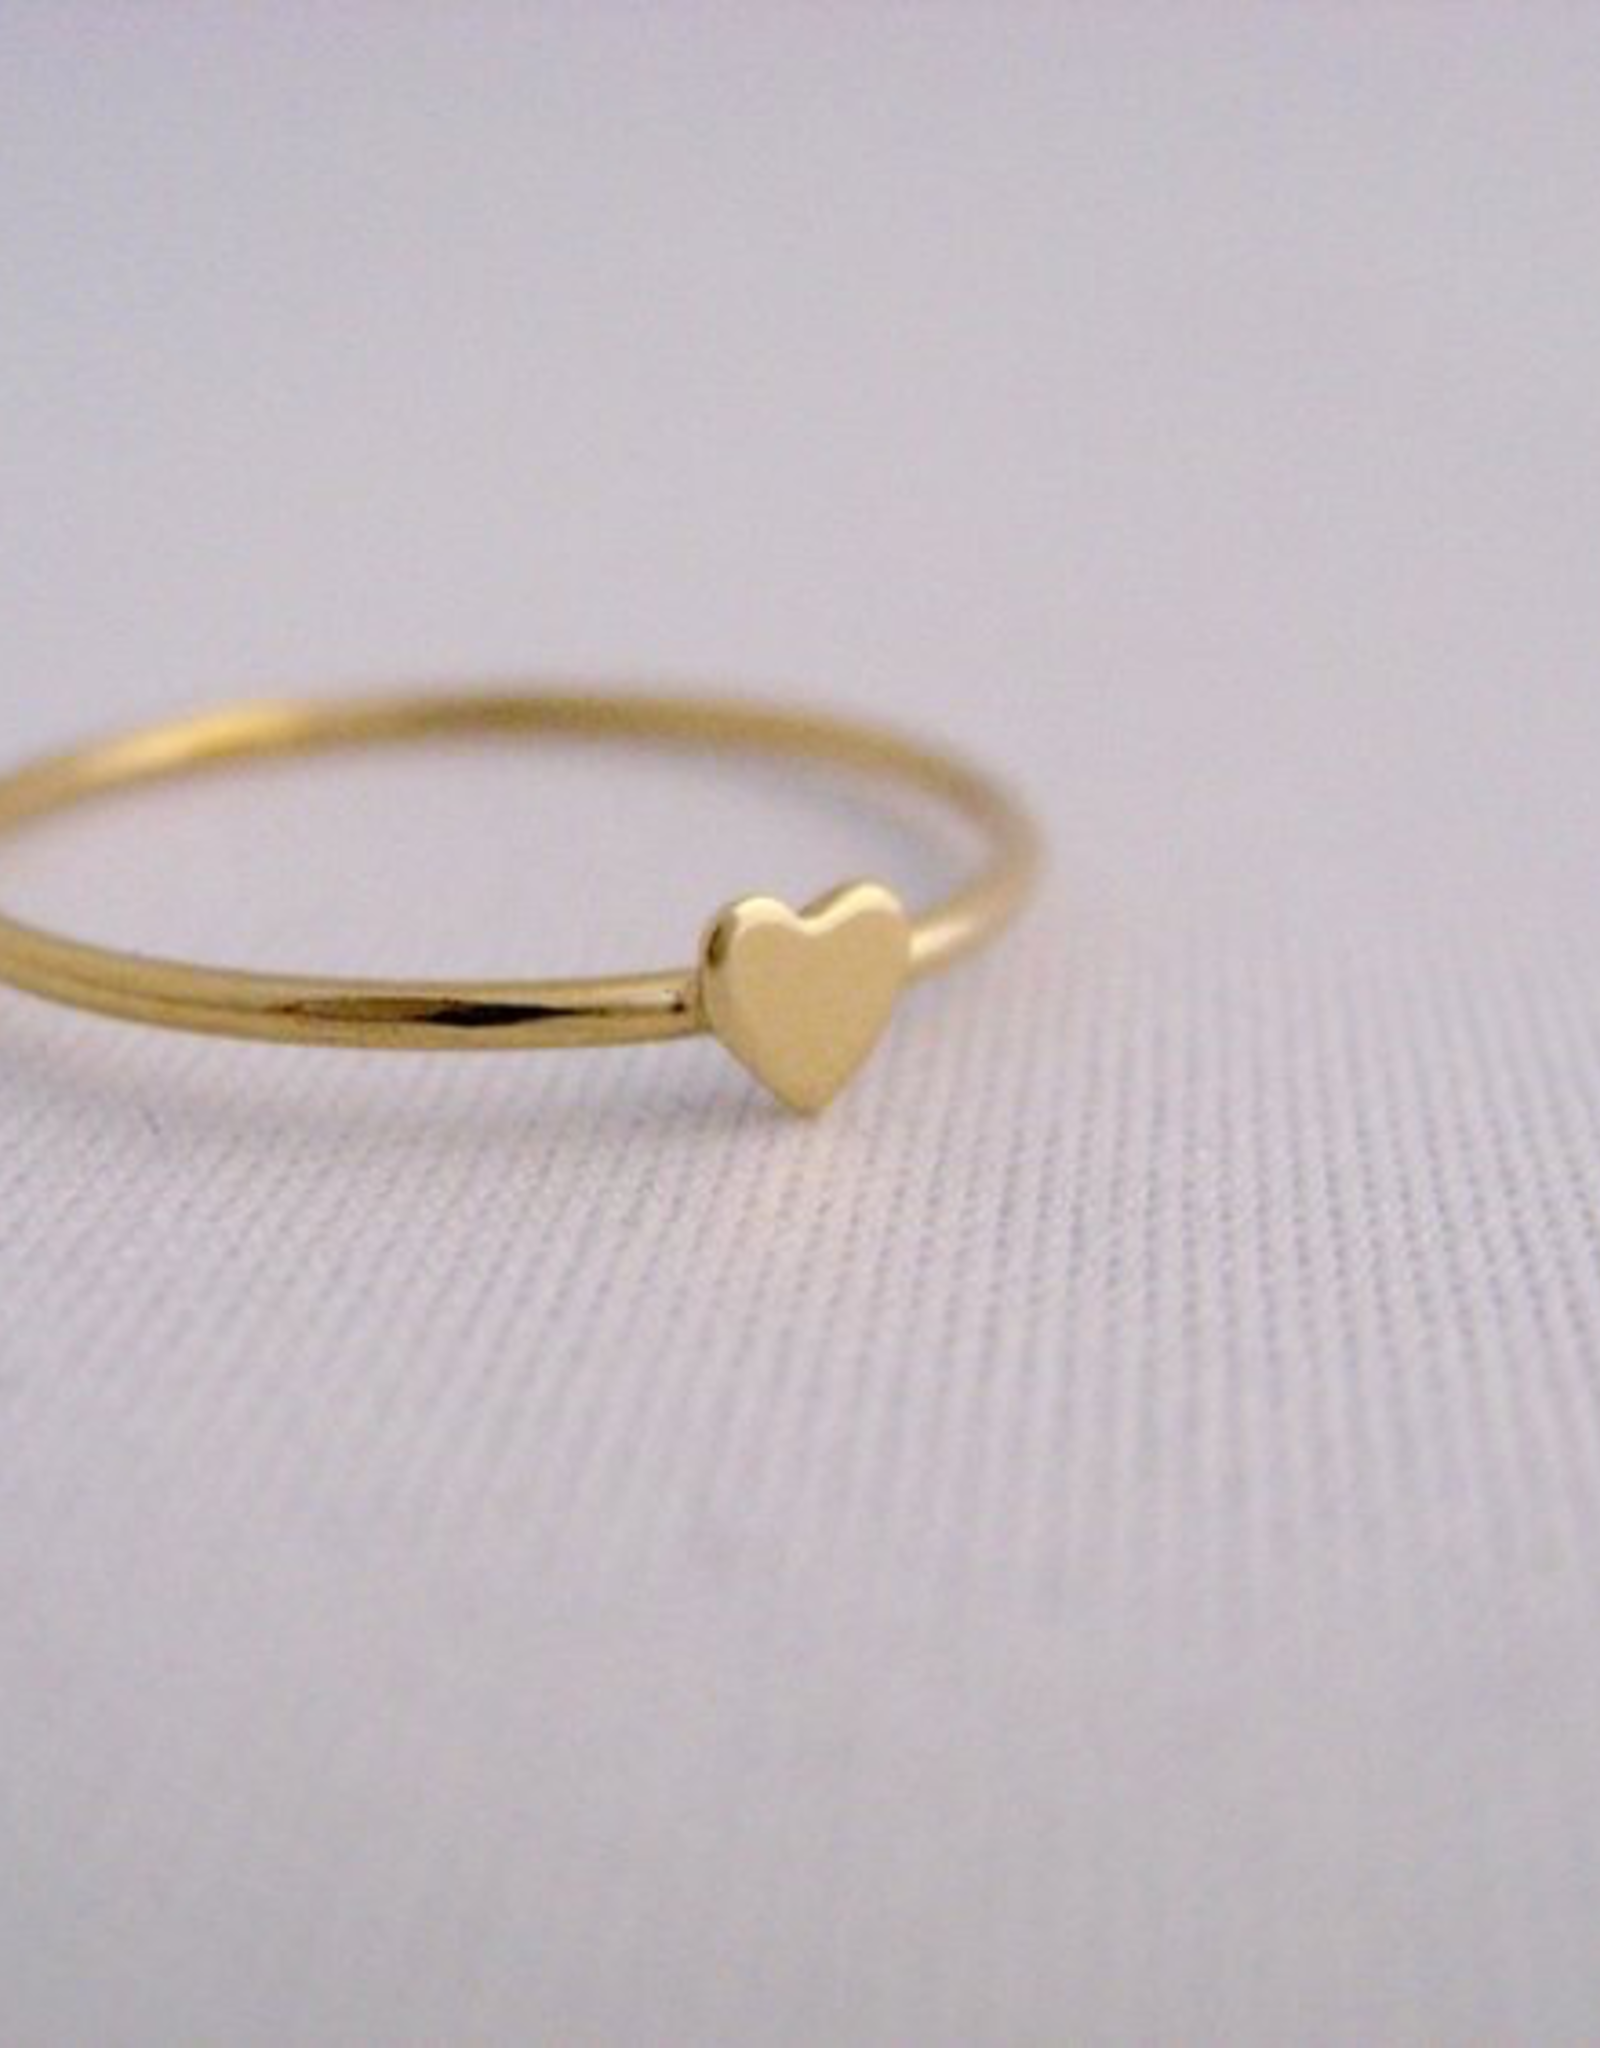 Sam Ring - Gold or Silver